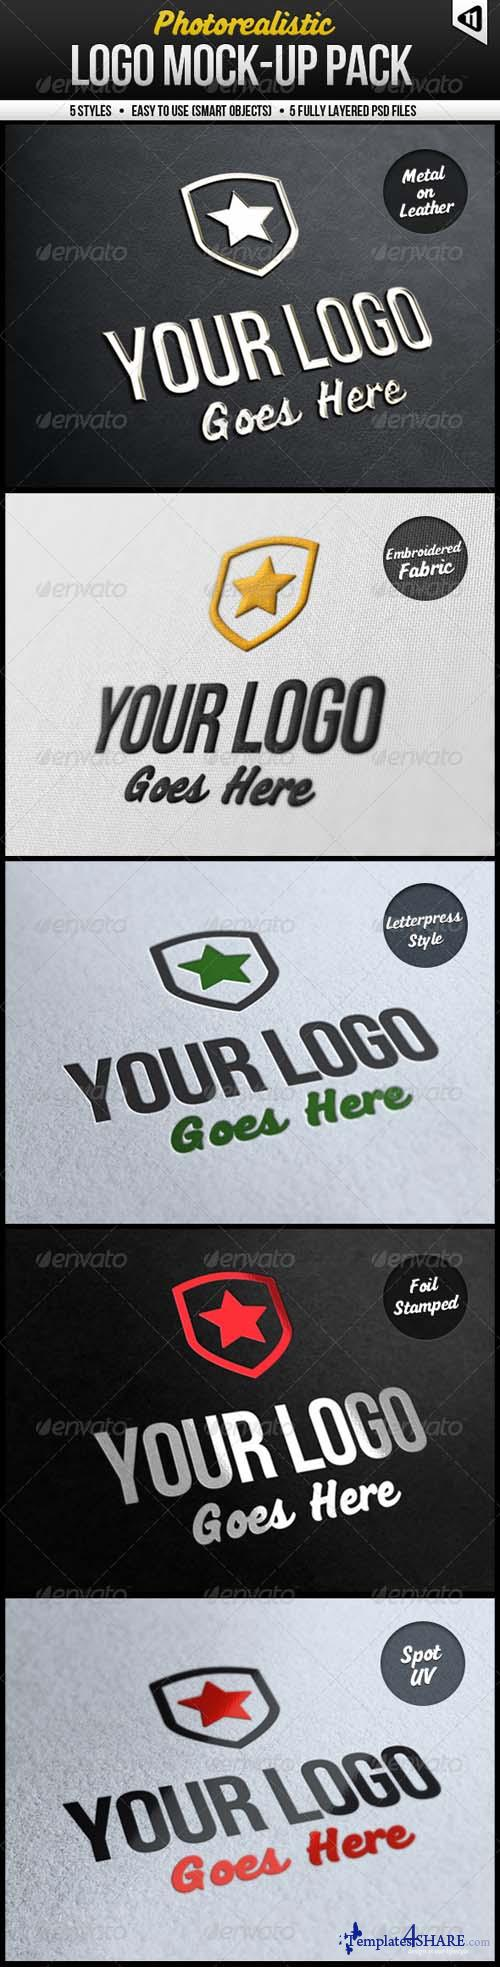 Graphicriver Photorealistic Logo Mock-Up Pack